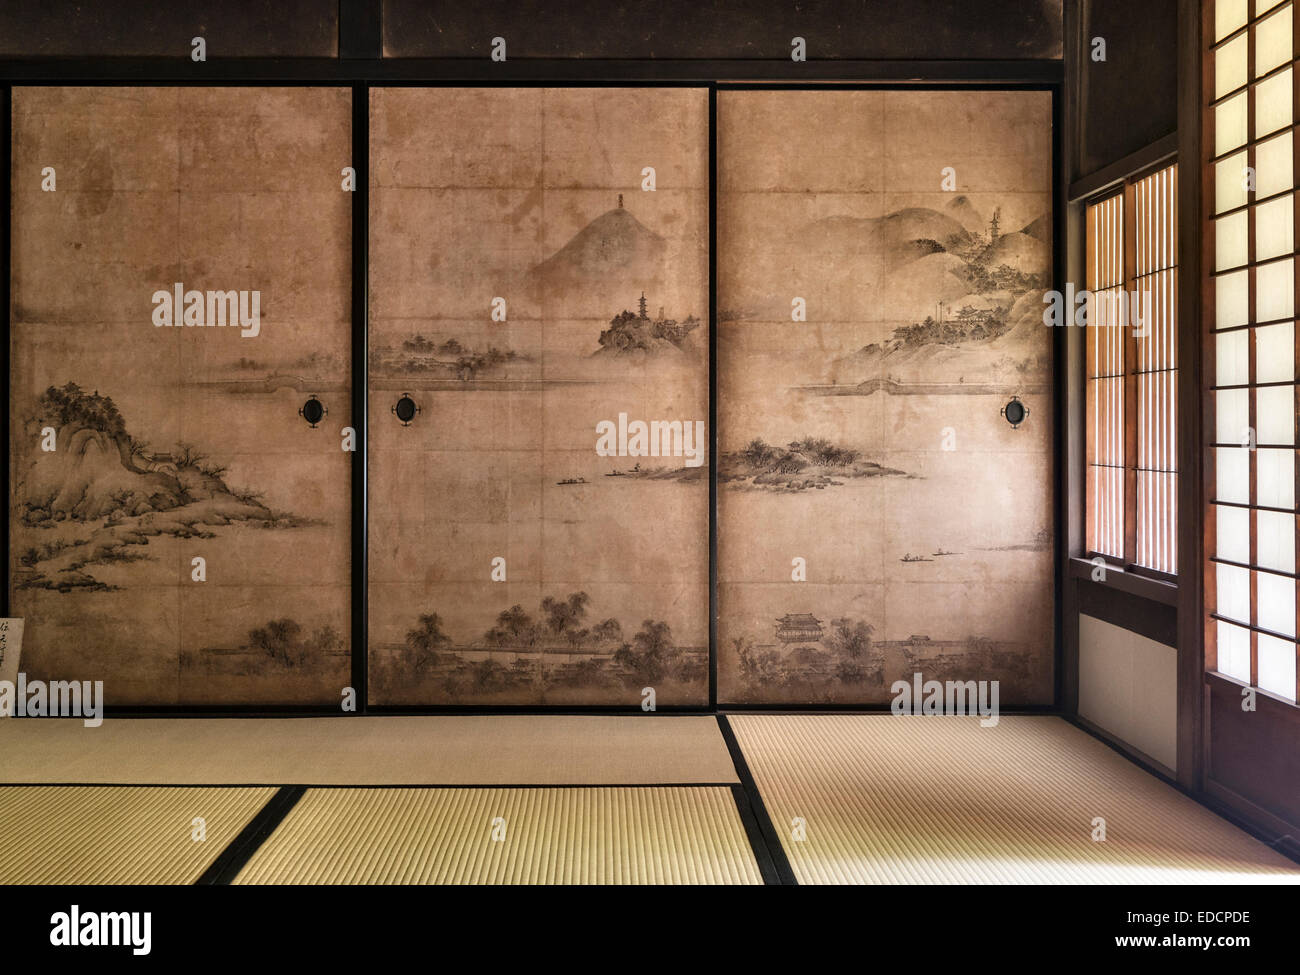 Shinju-an zen temple, Daitoku-ji, Kyoto, Japan. Chinese landscape painted on sliding partitions (fusuma) in a reception - Stock Image